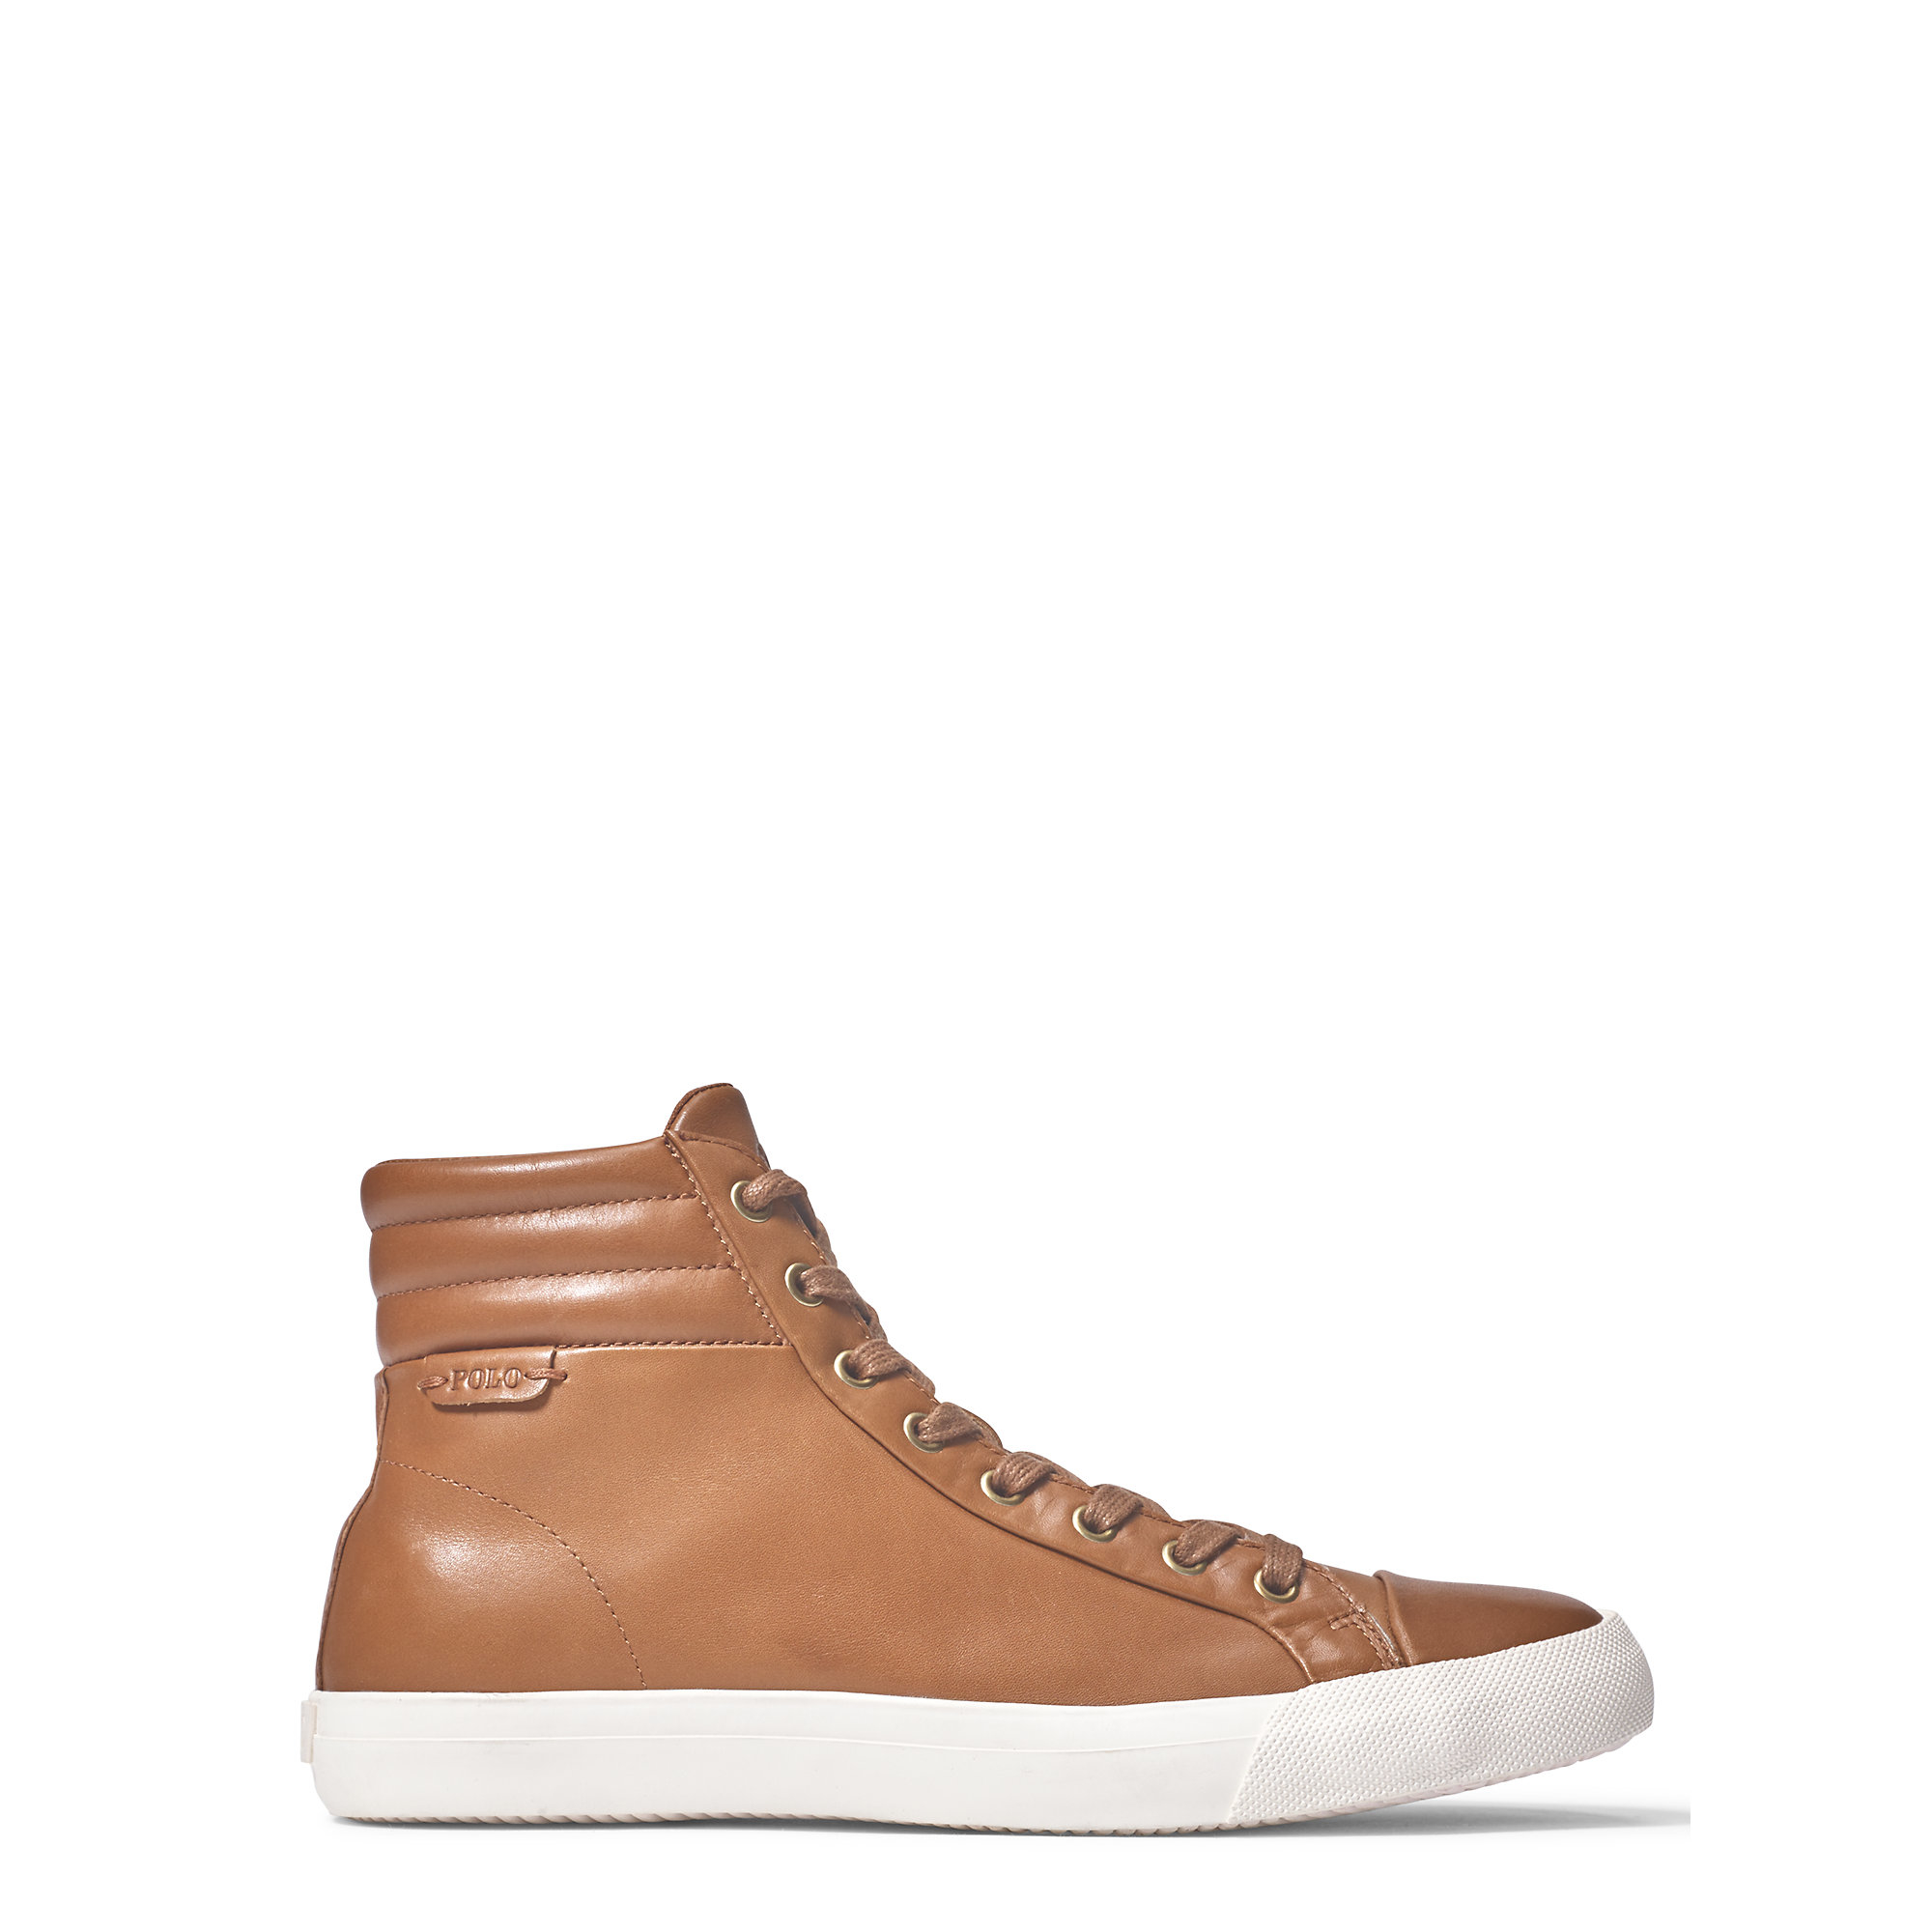 polo ralph lauren geffron leather sneaker in brown for men lyst. Black Bedroom Furniture Sets. Home Design Ideas